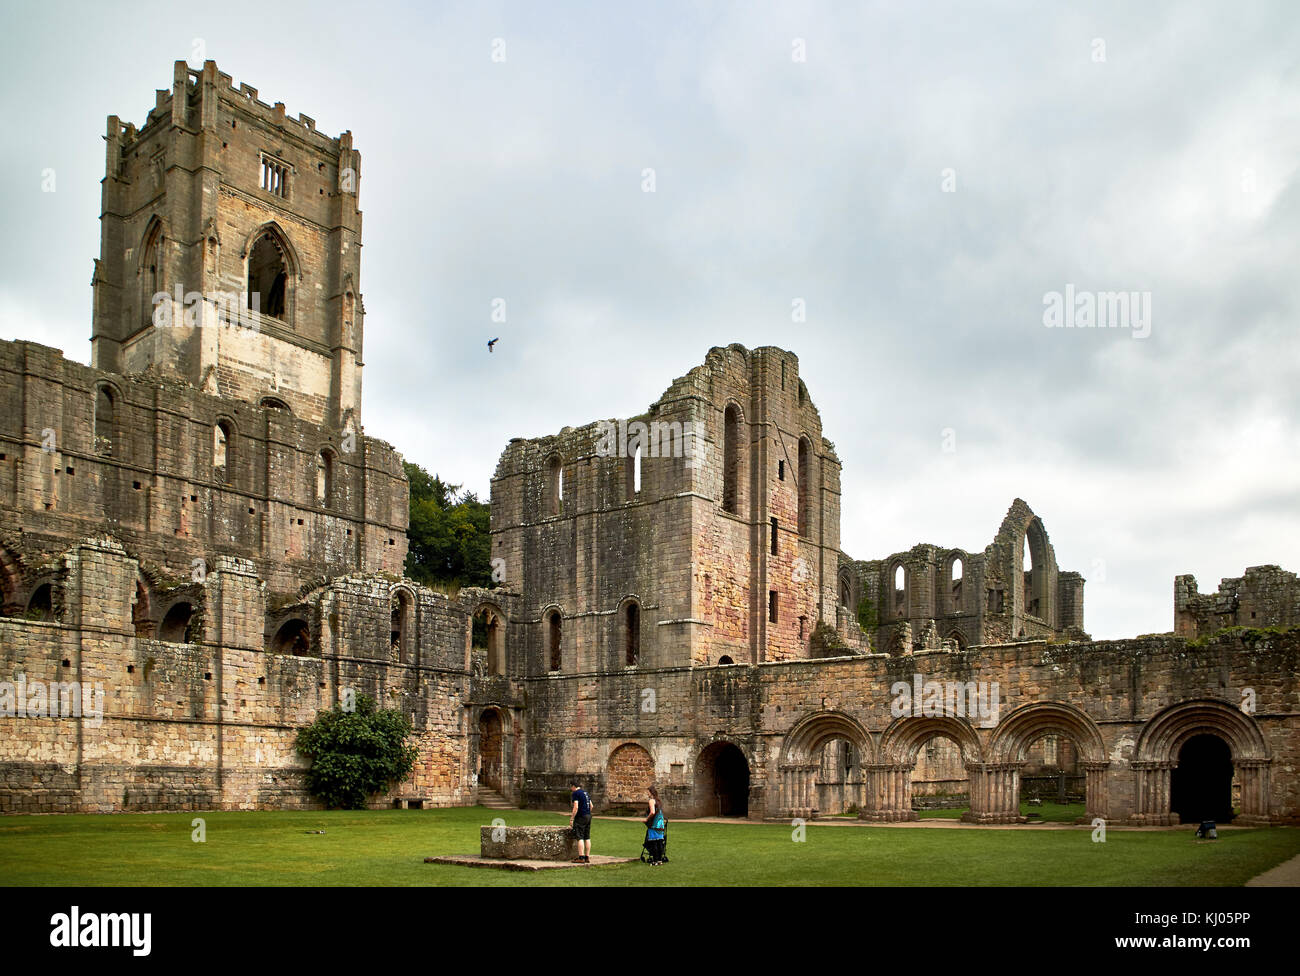 England, NorthYorkshire; the ruins of the 12th century Cistercian Abbey known as Fountains Abbey, one of the finest Stock Photo